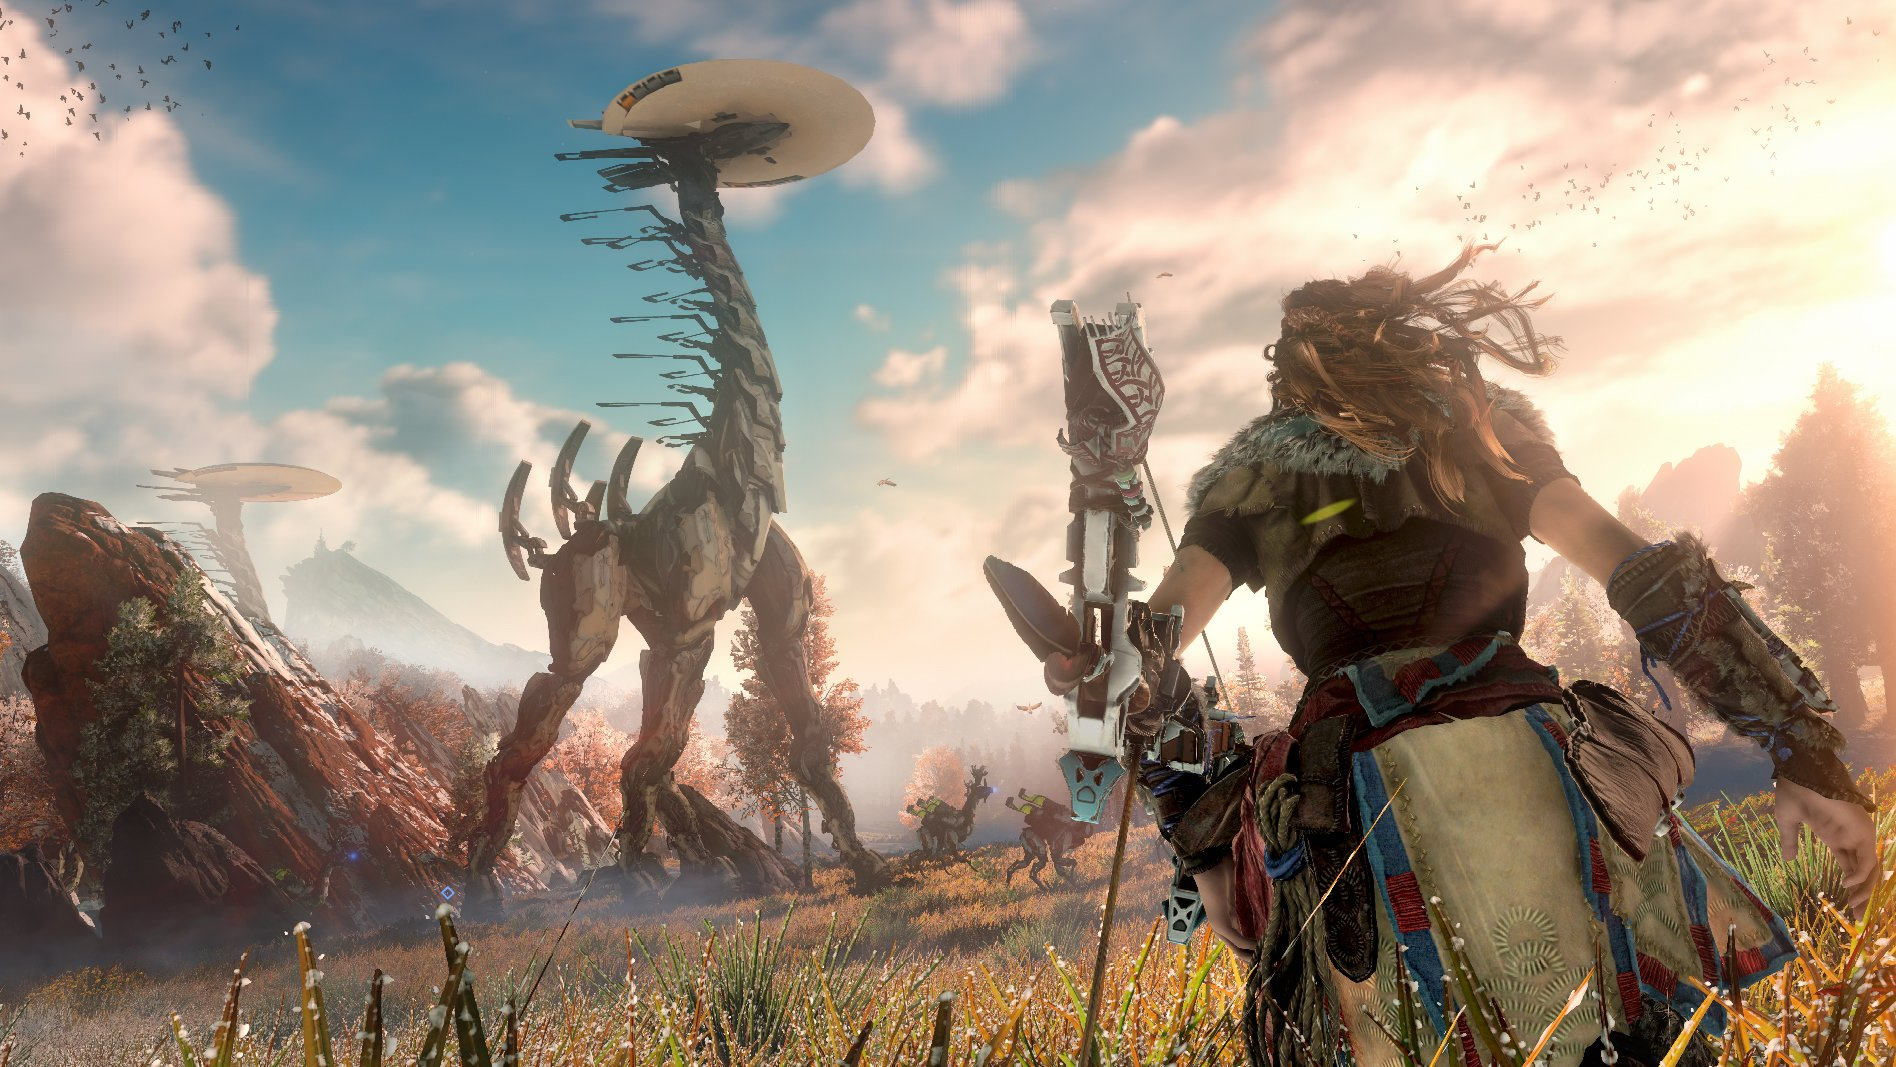 is Horizon Zero Dawn coming to PC?